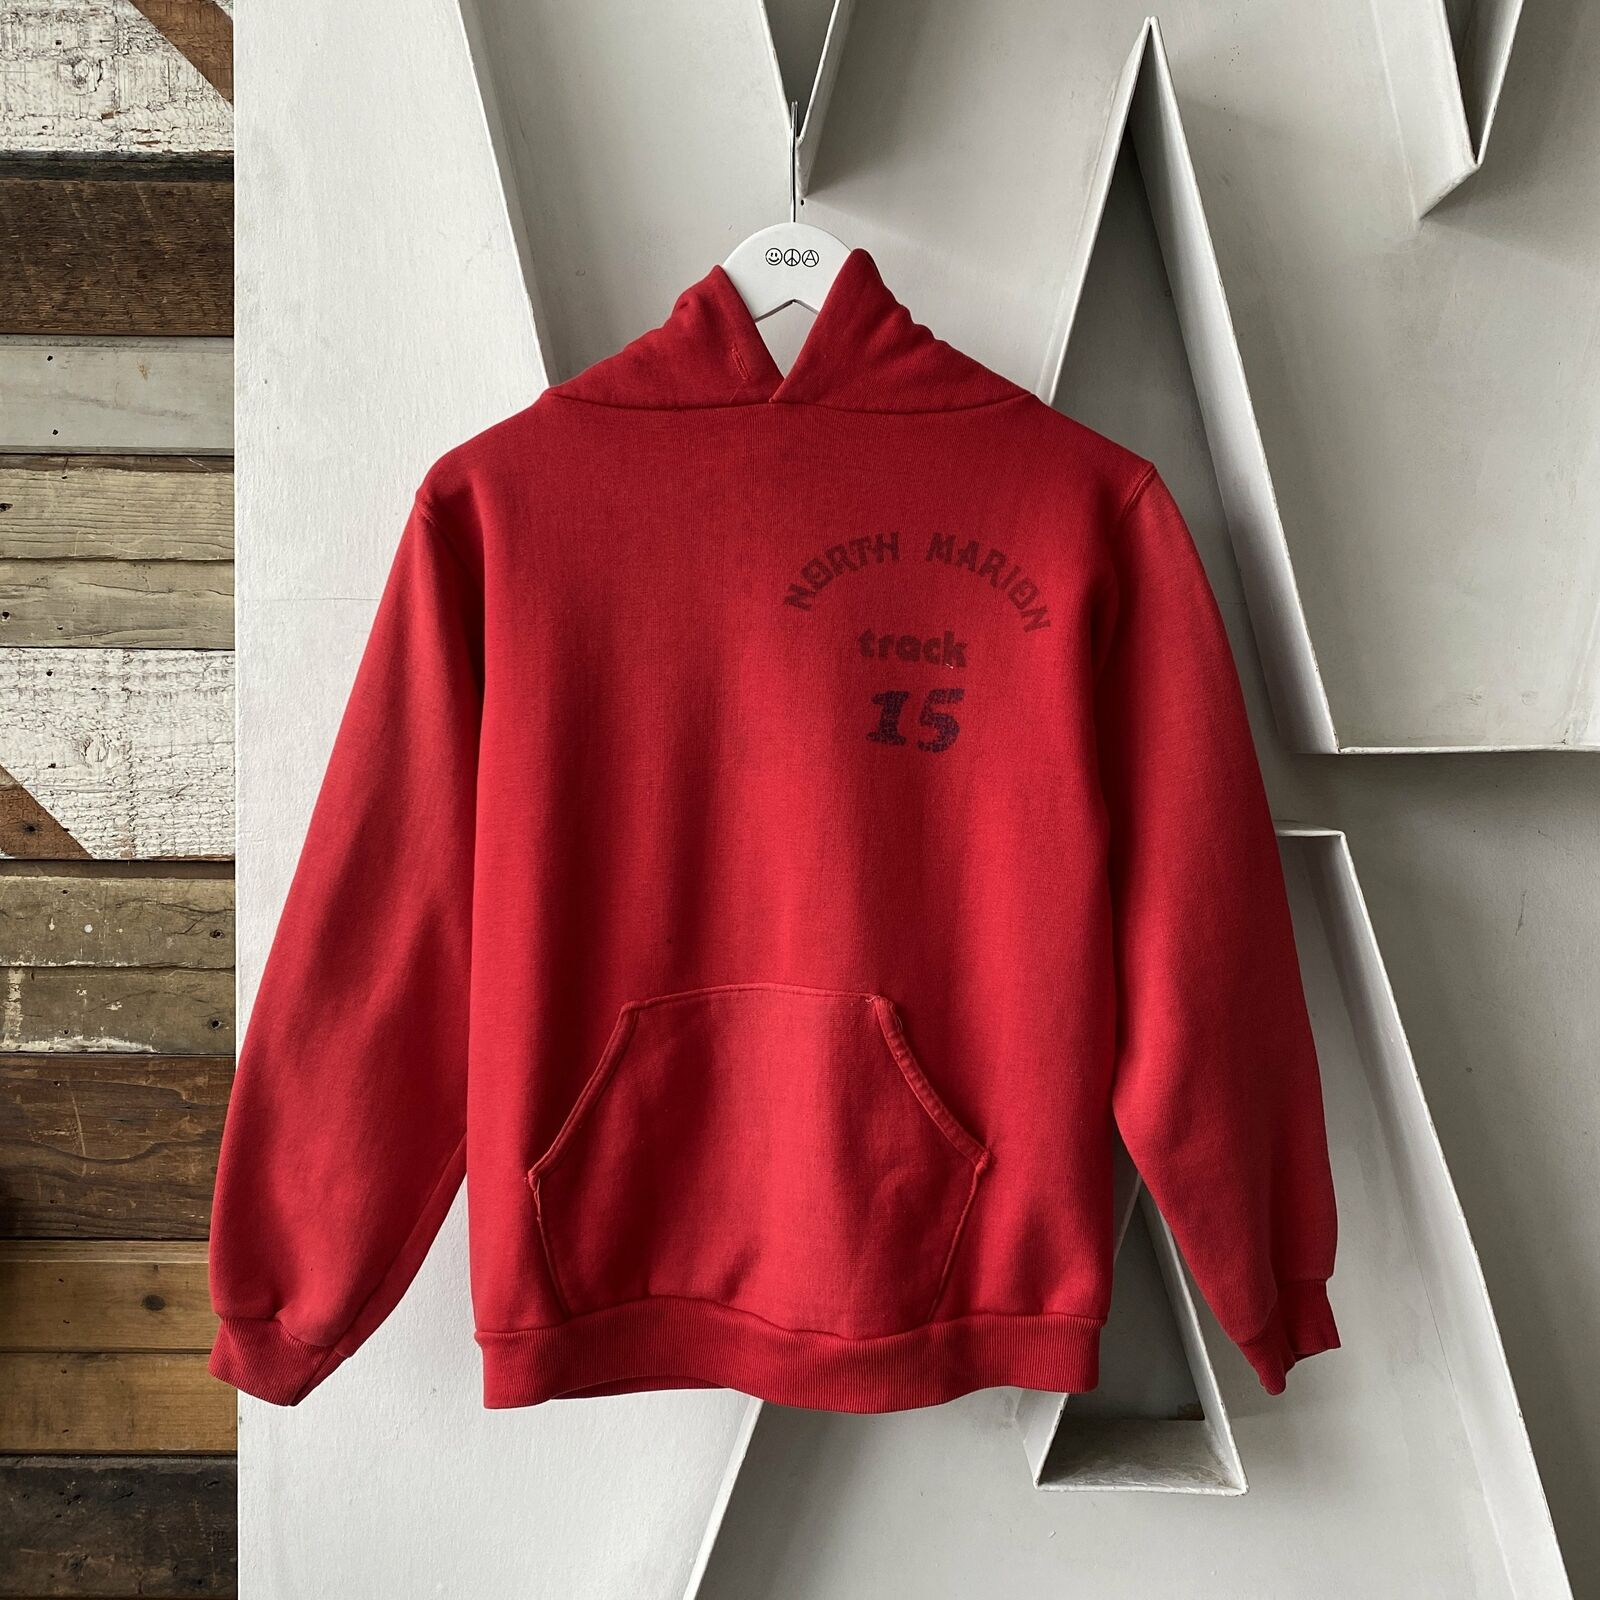 Vintage 70s Russell Hoodie - Small north marion t… - image 1